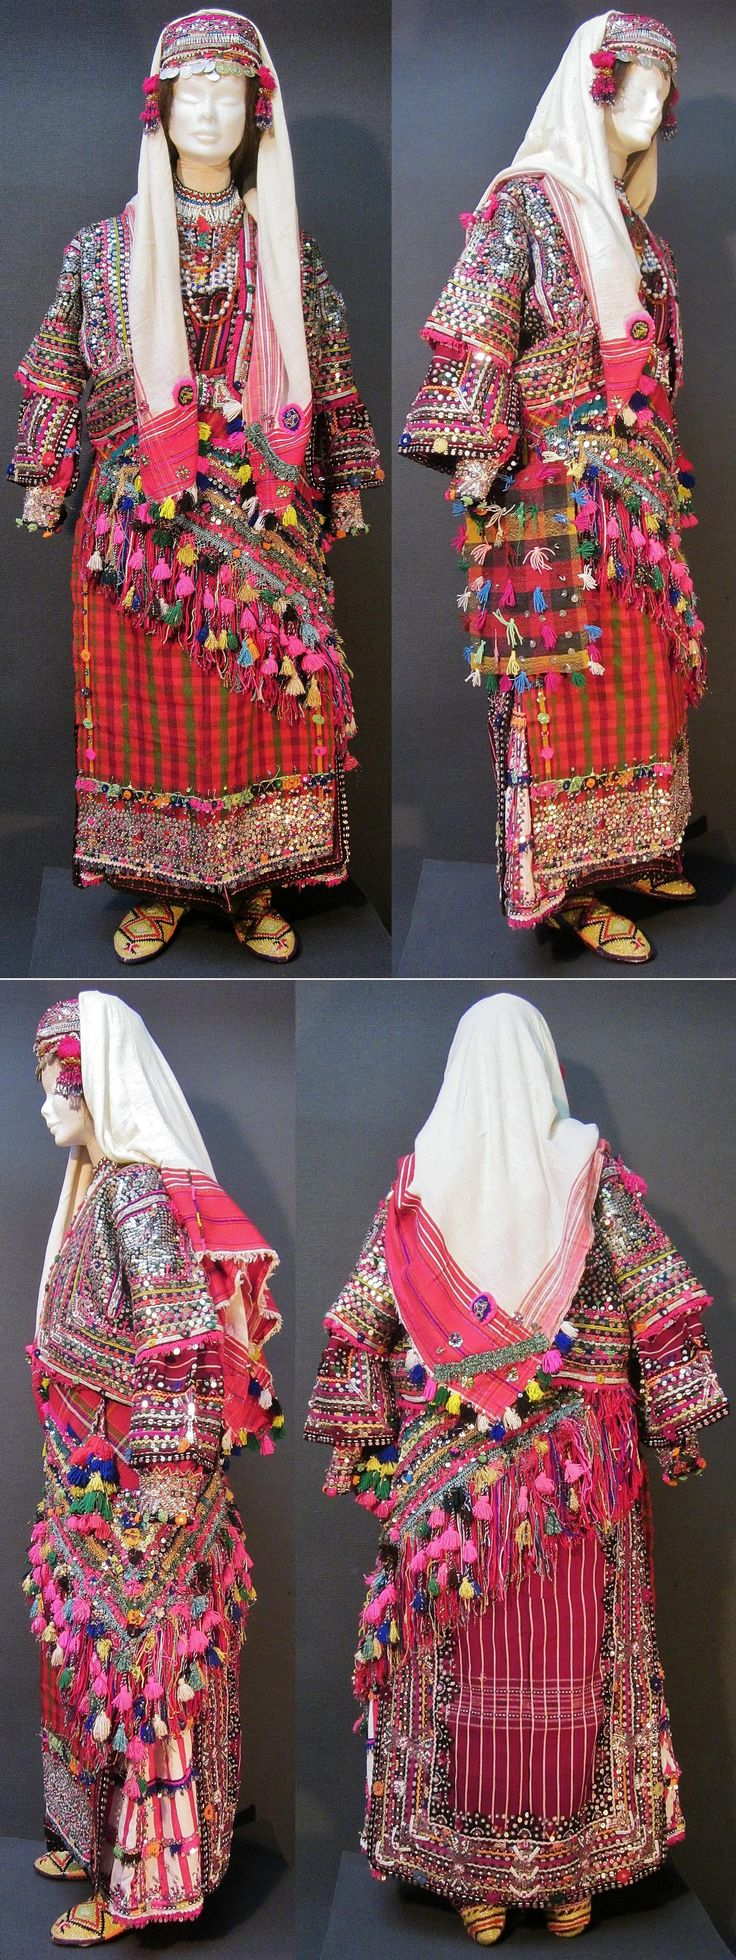 A traditional festive costume from Pomak villages near Biga (Çanakkale prov.), mid-20th c. This is the way a betrothed girl ('nişanlı kız') would wear the costume. Characteristics: 1) the tip of the 'arkalık kuşak' (triangular waist cloth) is worn on the hip; 2) the hat & imitation hair (black cotton plaits, attached to back of the hat) are covered by the headscarf. (Kavak Costume Collection - Antwerpen/Belgium).